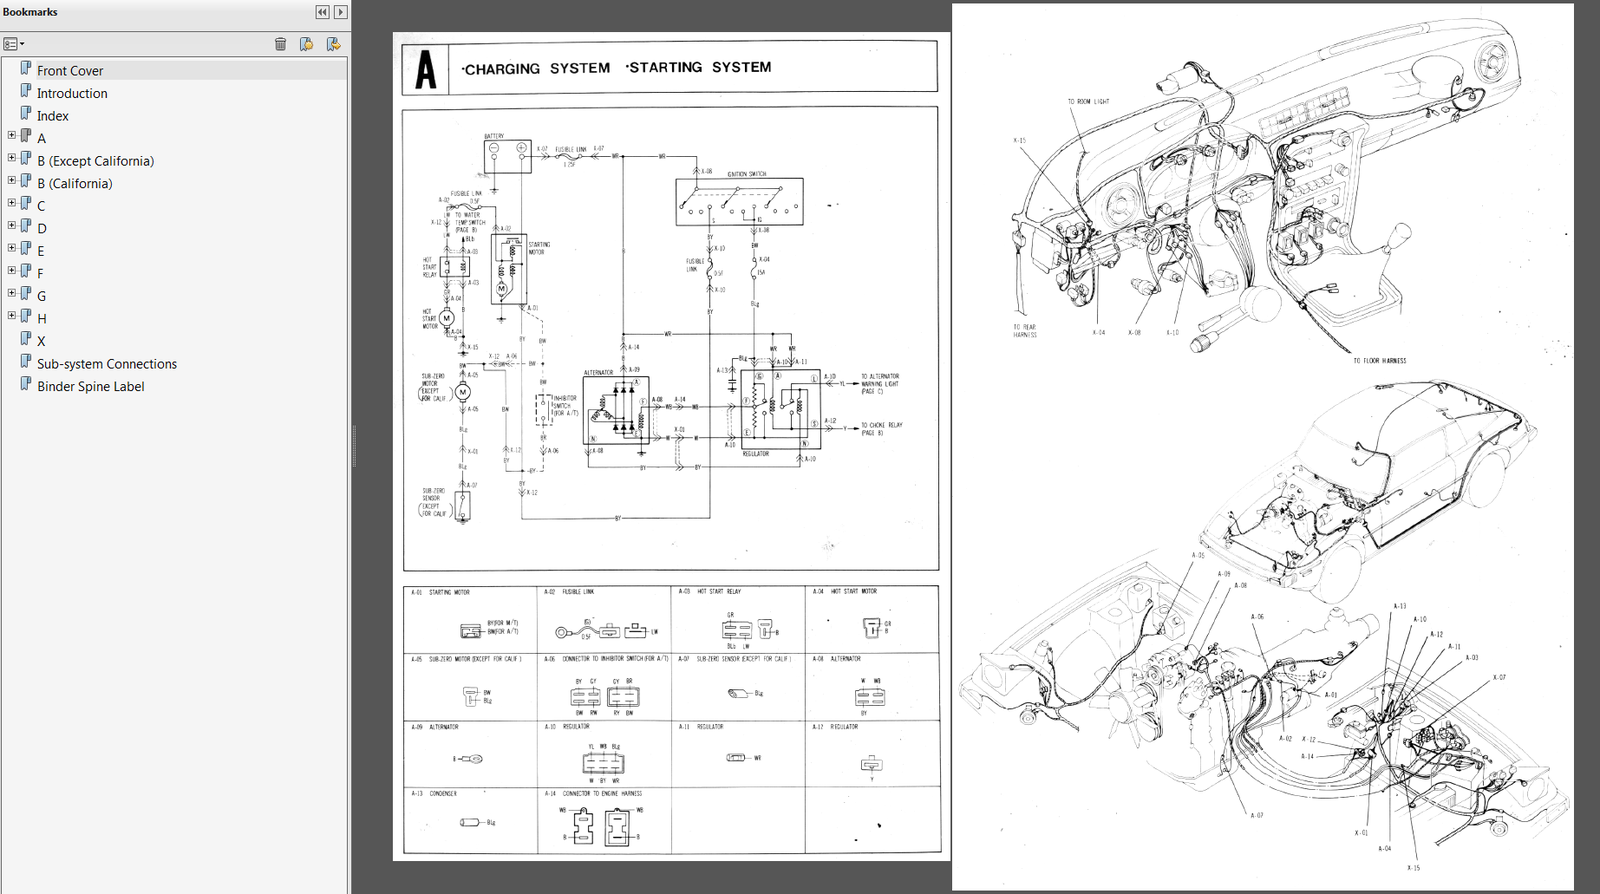 1982 Mazda RX-7 Factory Wiring Diagram Manual 5001-10-81E